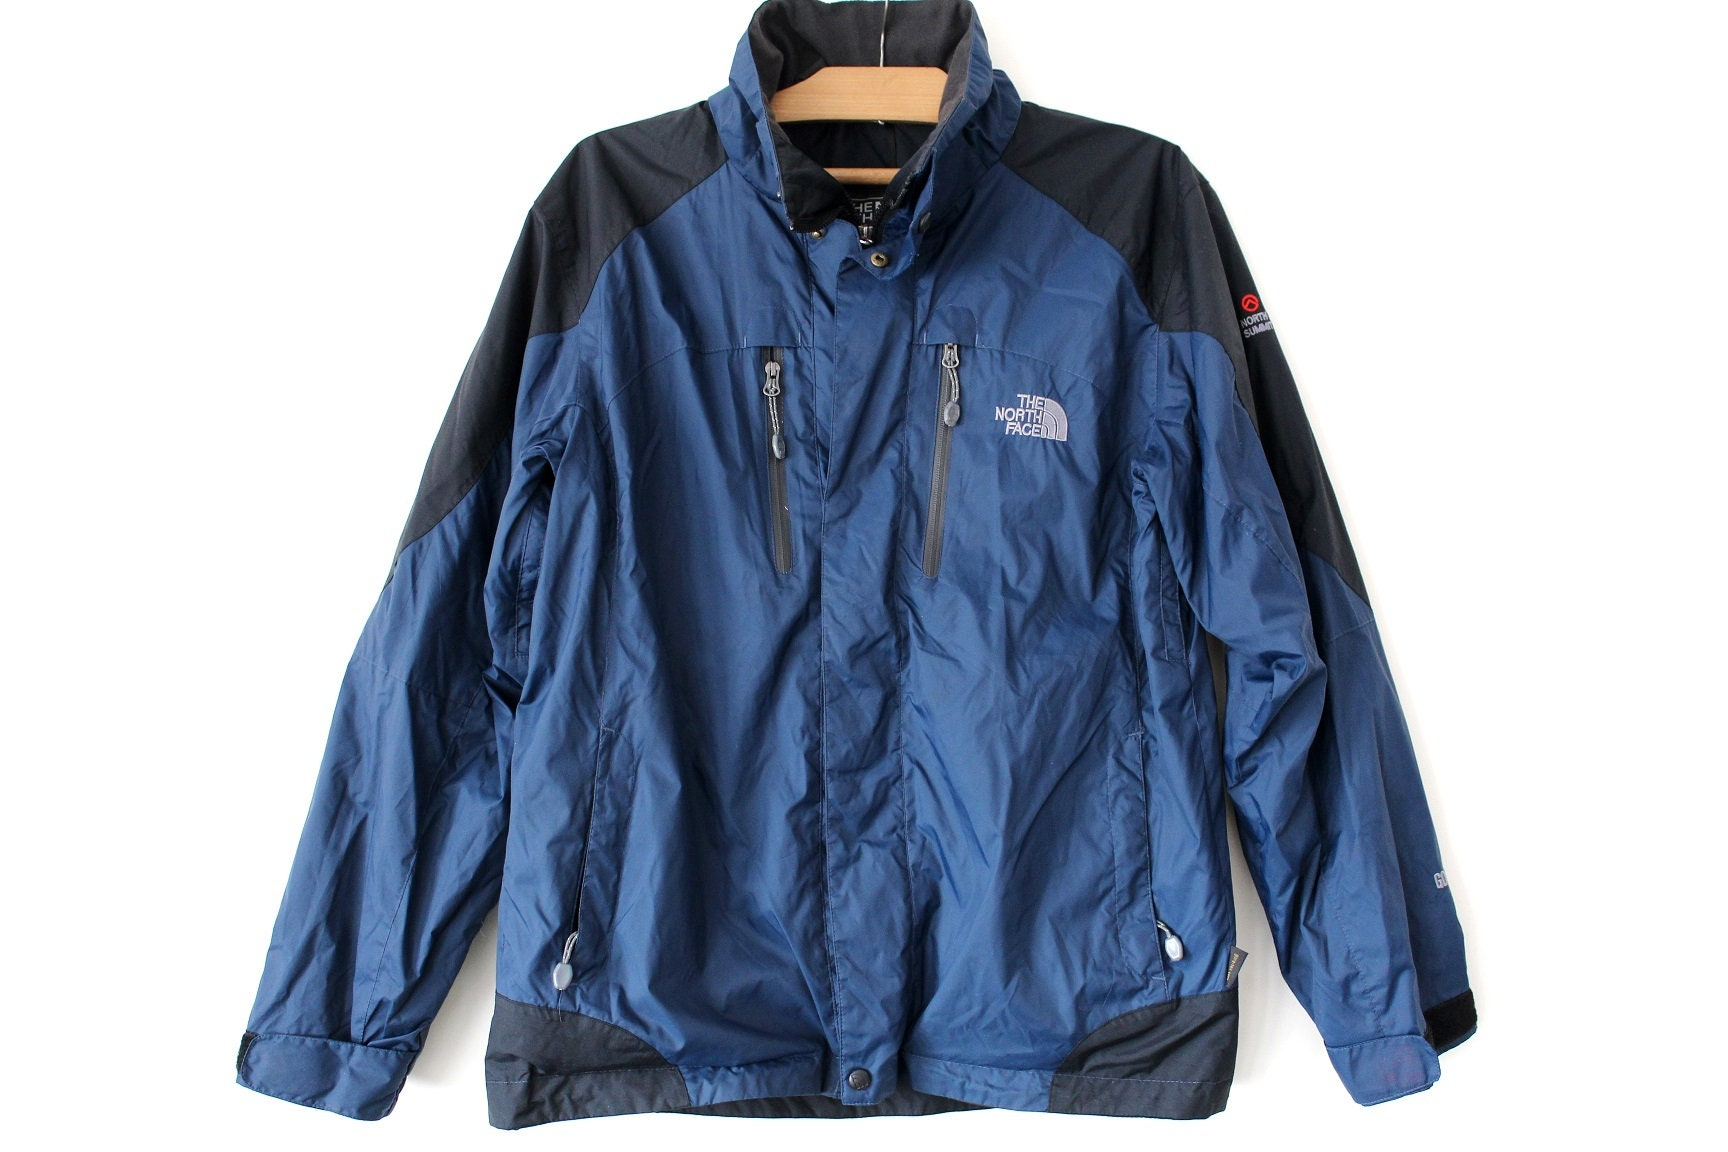 d70f0ce99 90's The North Face Jacket, Vintage North Face Summit Series Goretex  Jacket, The North Face Windbreaker, Waterproof, Ski, Mountain Jacket